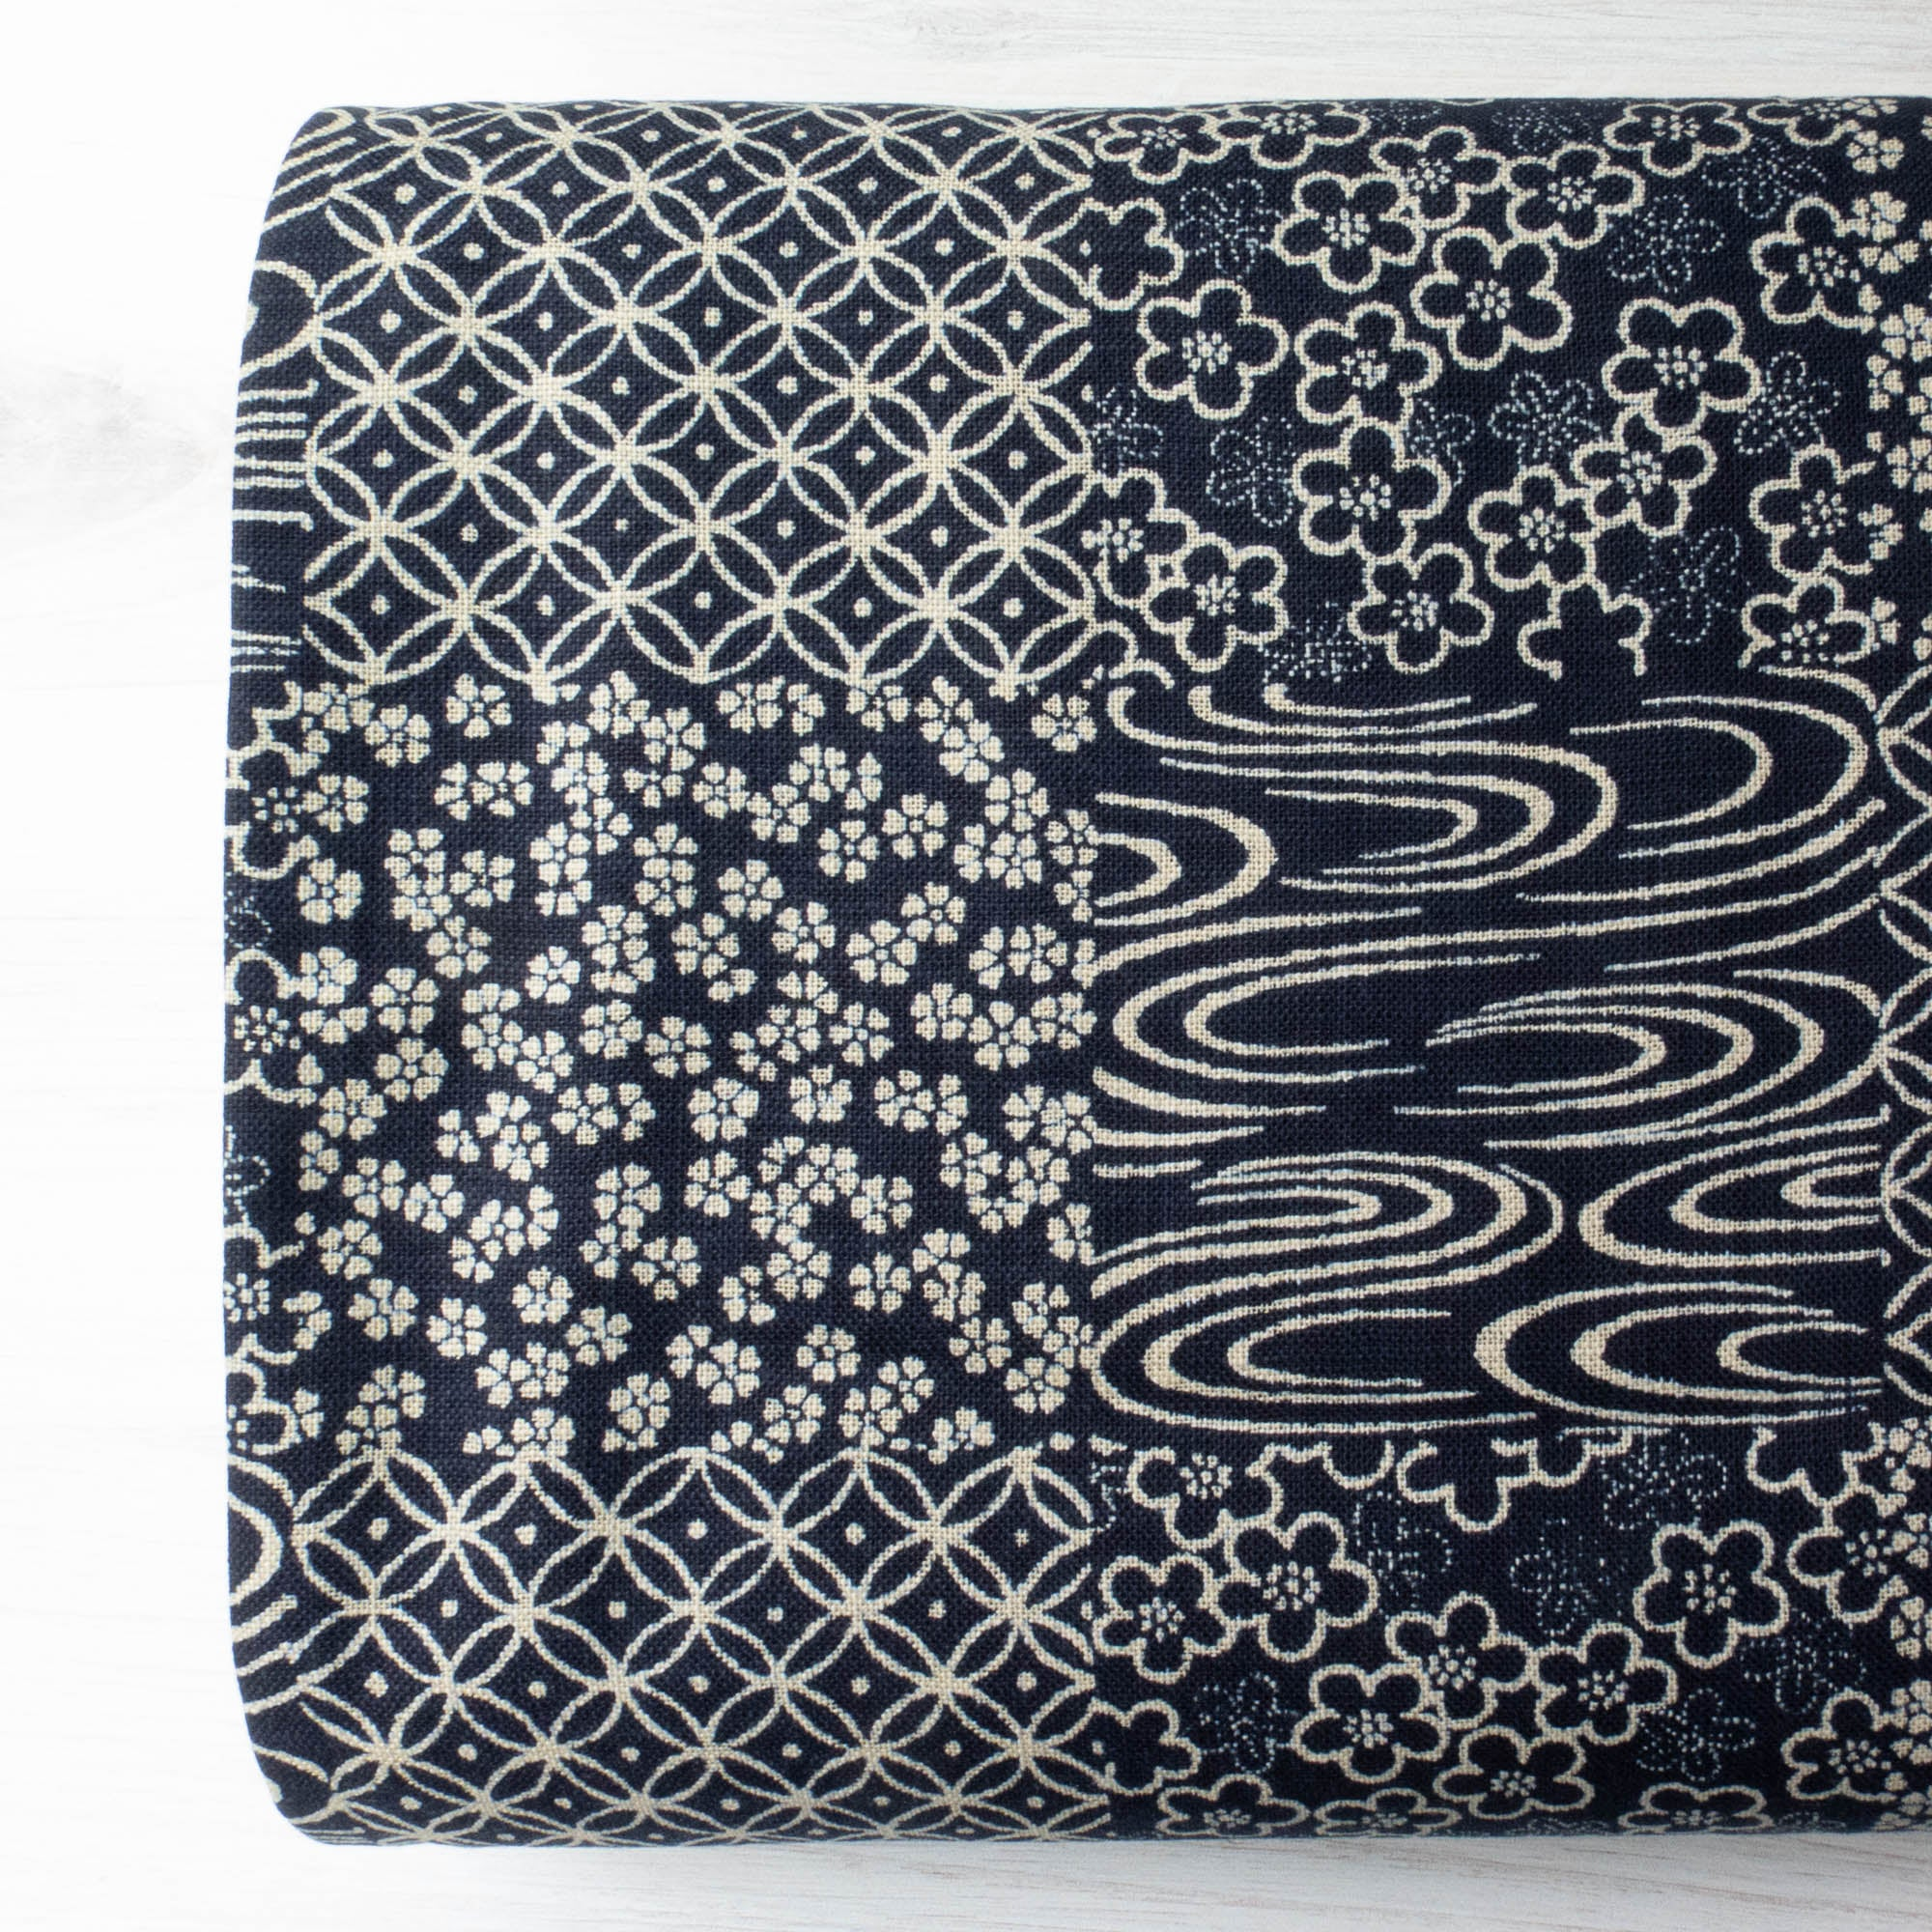 Sevenberry Nara Homespun :: Cheater Panel Navy Fabric - Snuggly Monkey